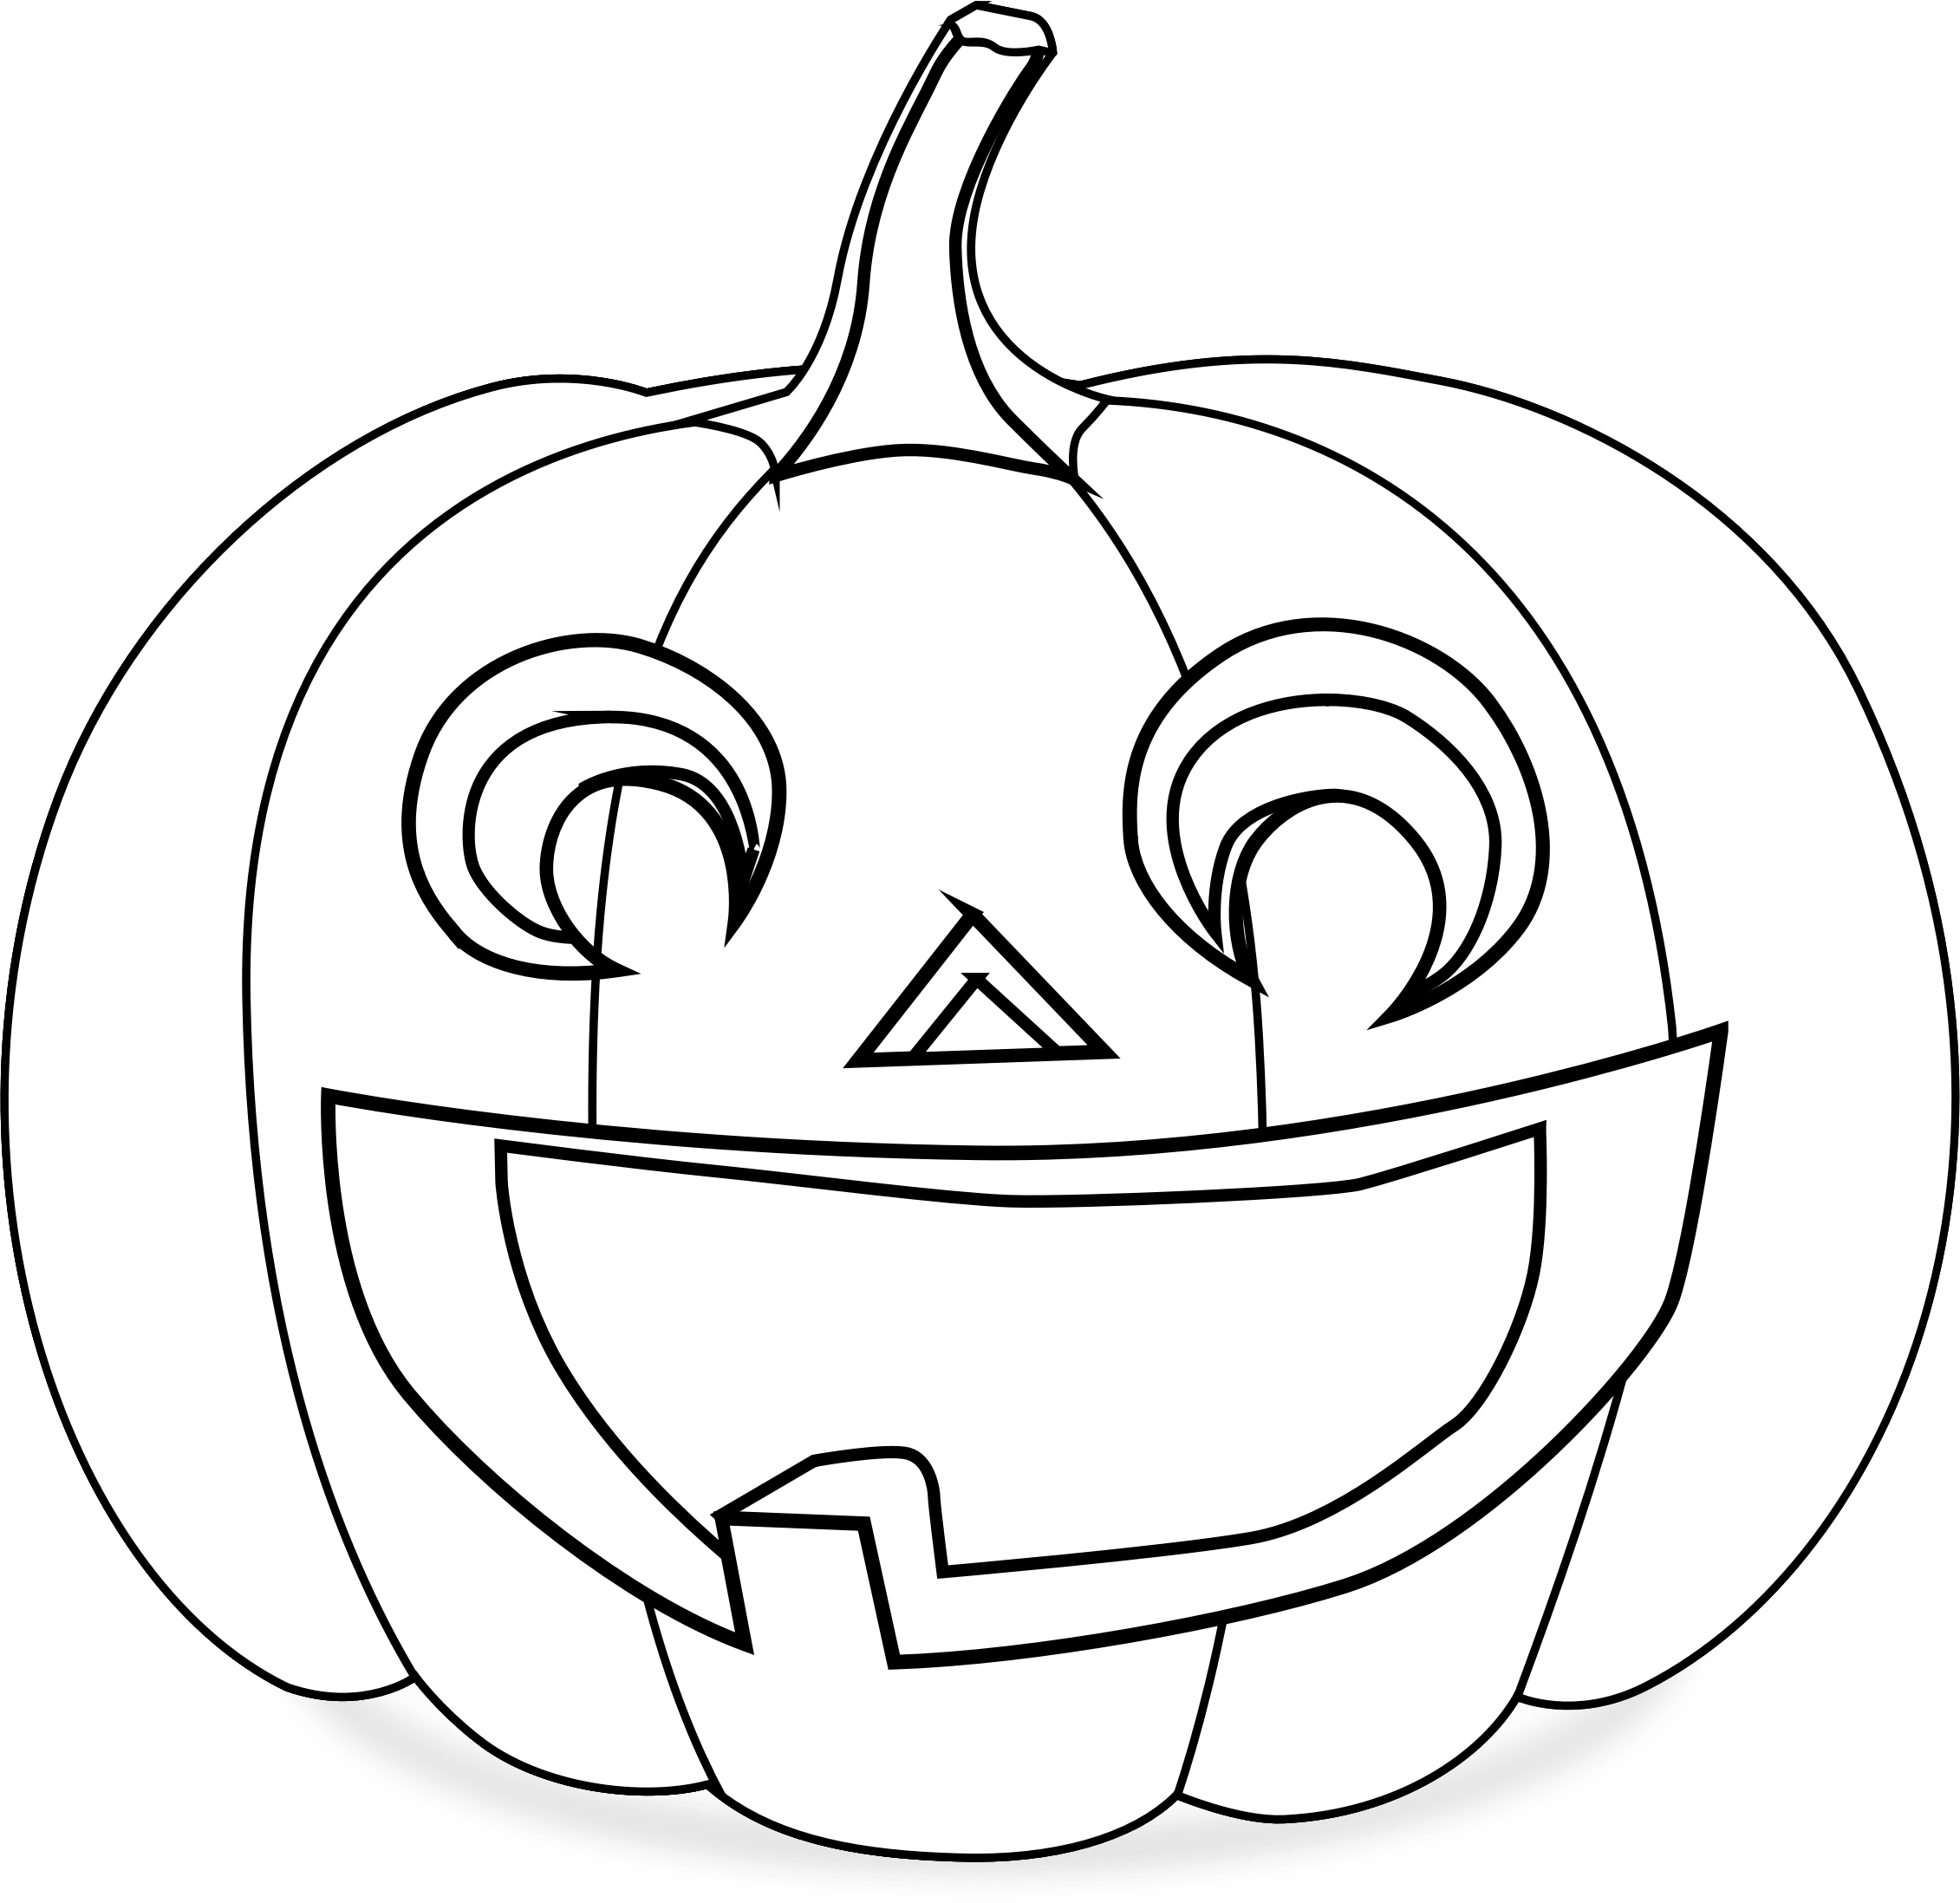 Pumpkin black and white smiley pumpkin clipart black and white.